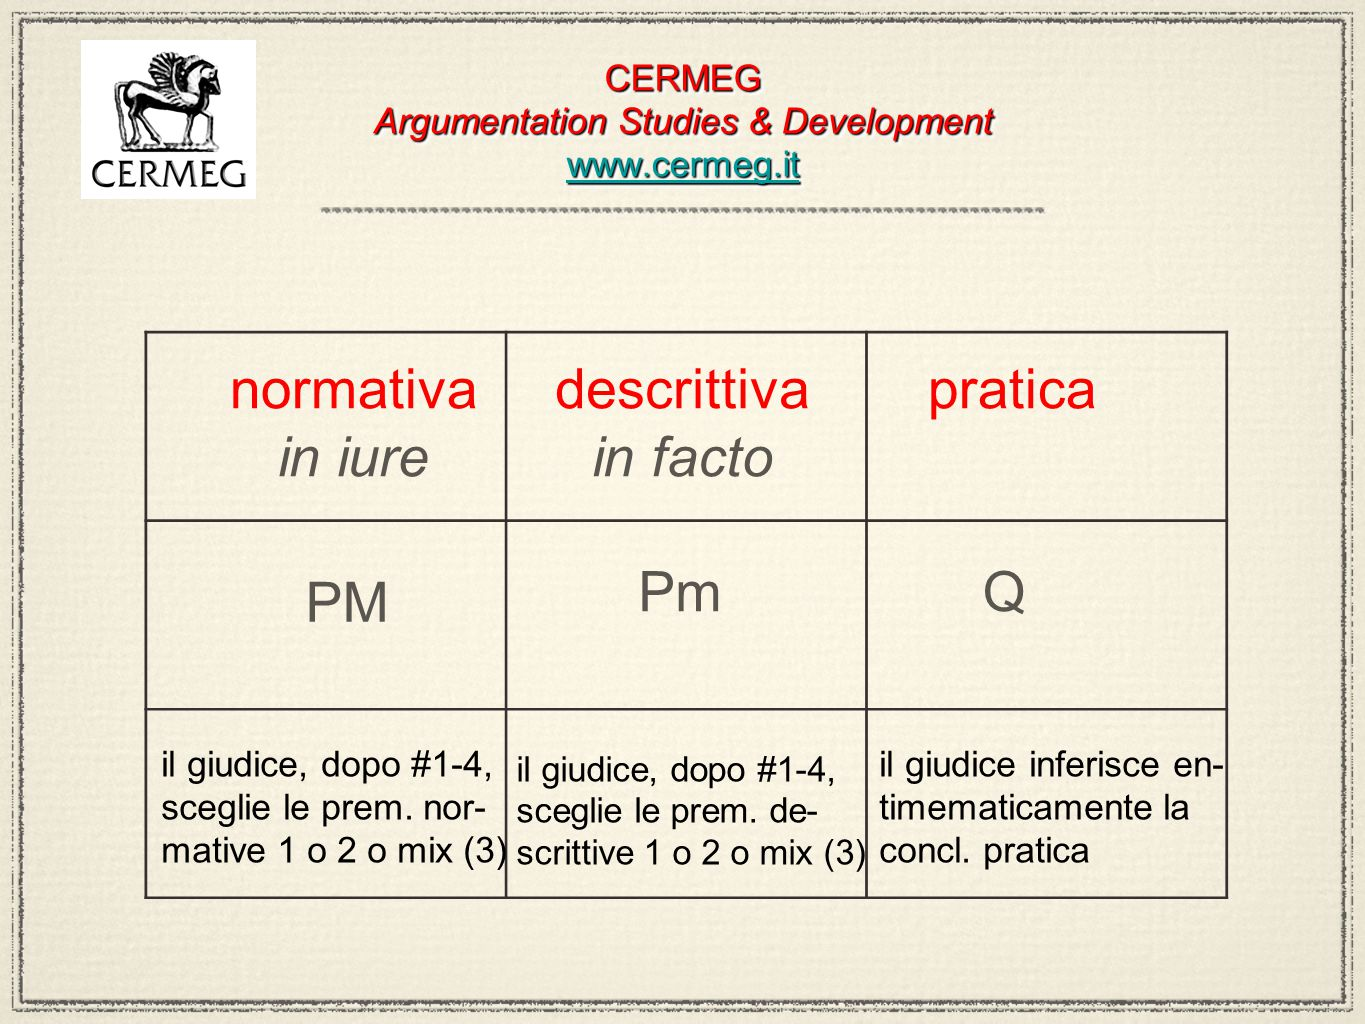 CERMEG Argumentation Studies & Development www.cermeg.it